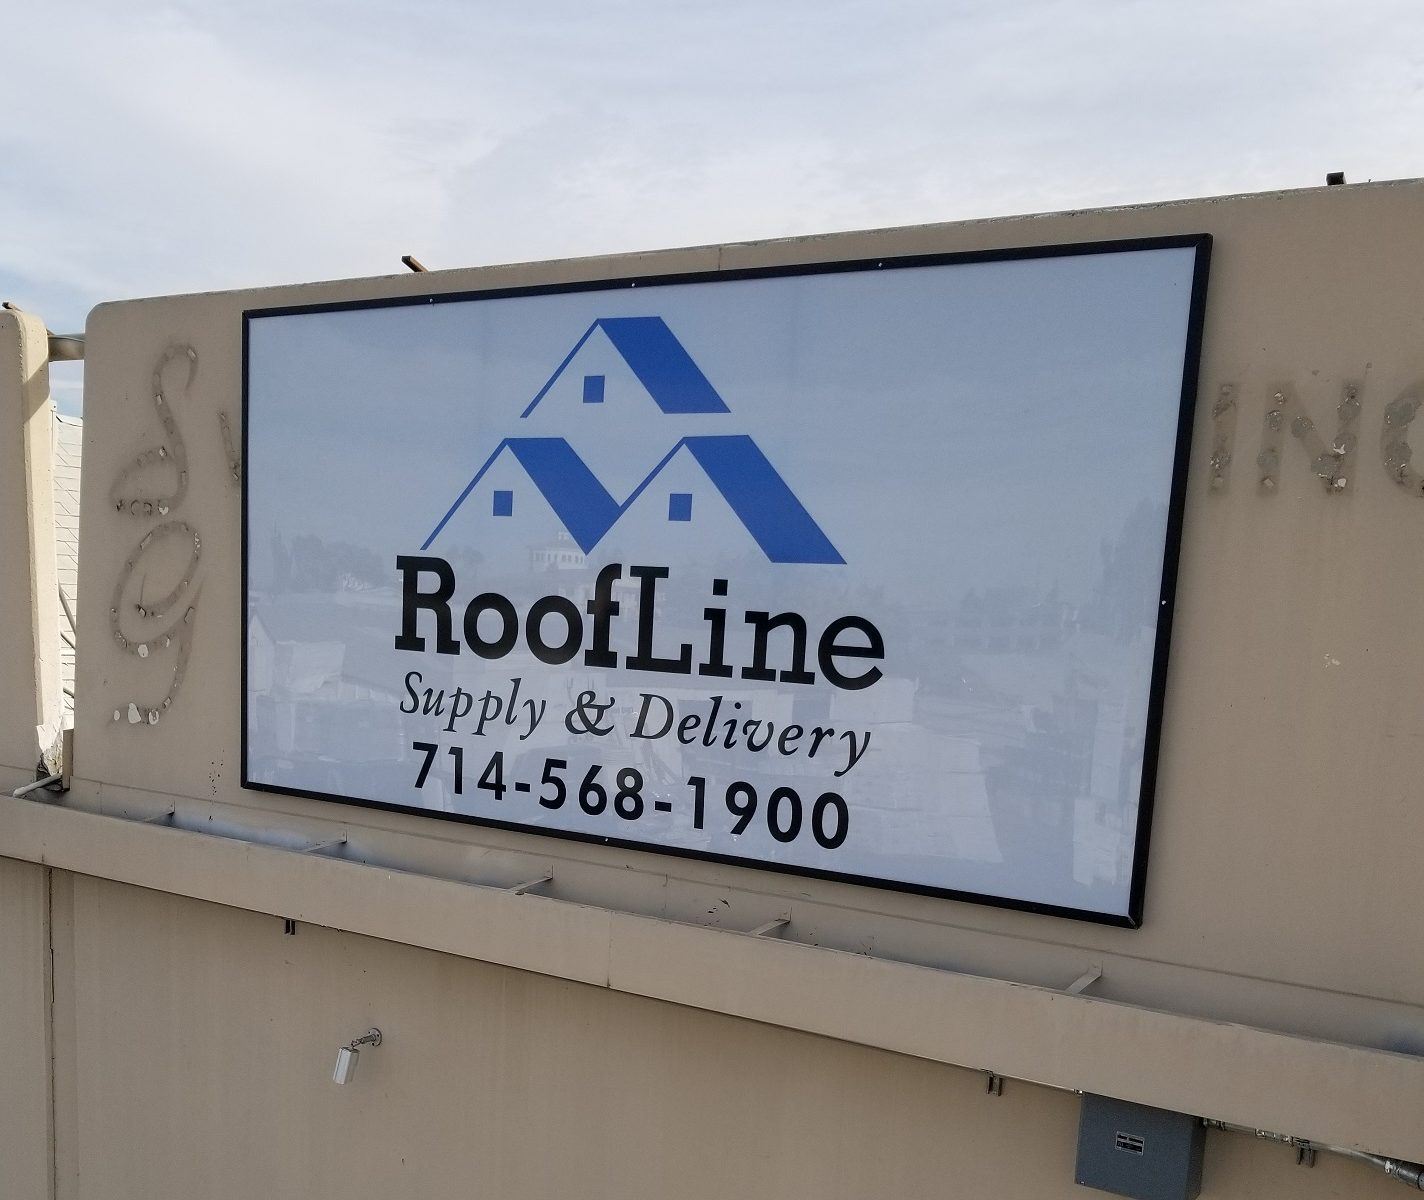 Custom Business Sign, Metal Sign Company Santa Ana, Business Identification Sign, Sign Packages Orange County, Sign Makers Orange County, Premium Sign Solutions Los Angeles, Roofline Supply Sign Santa Ana CA, Exterior Sign Company Santa Ana